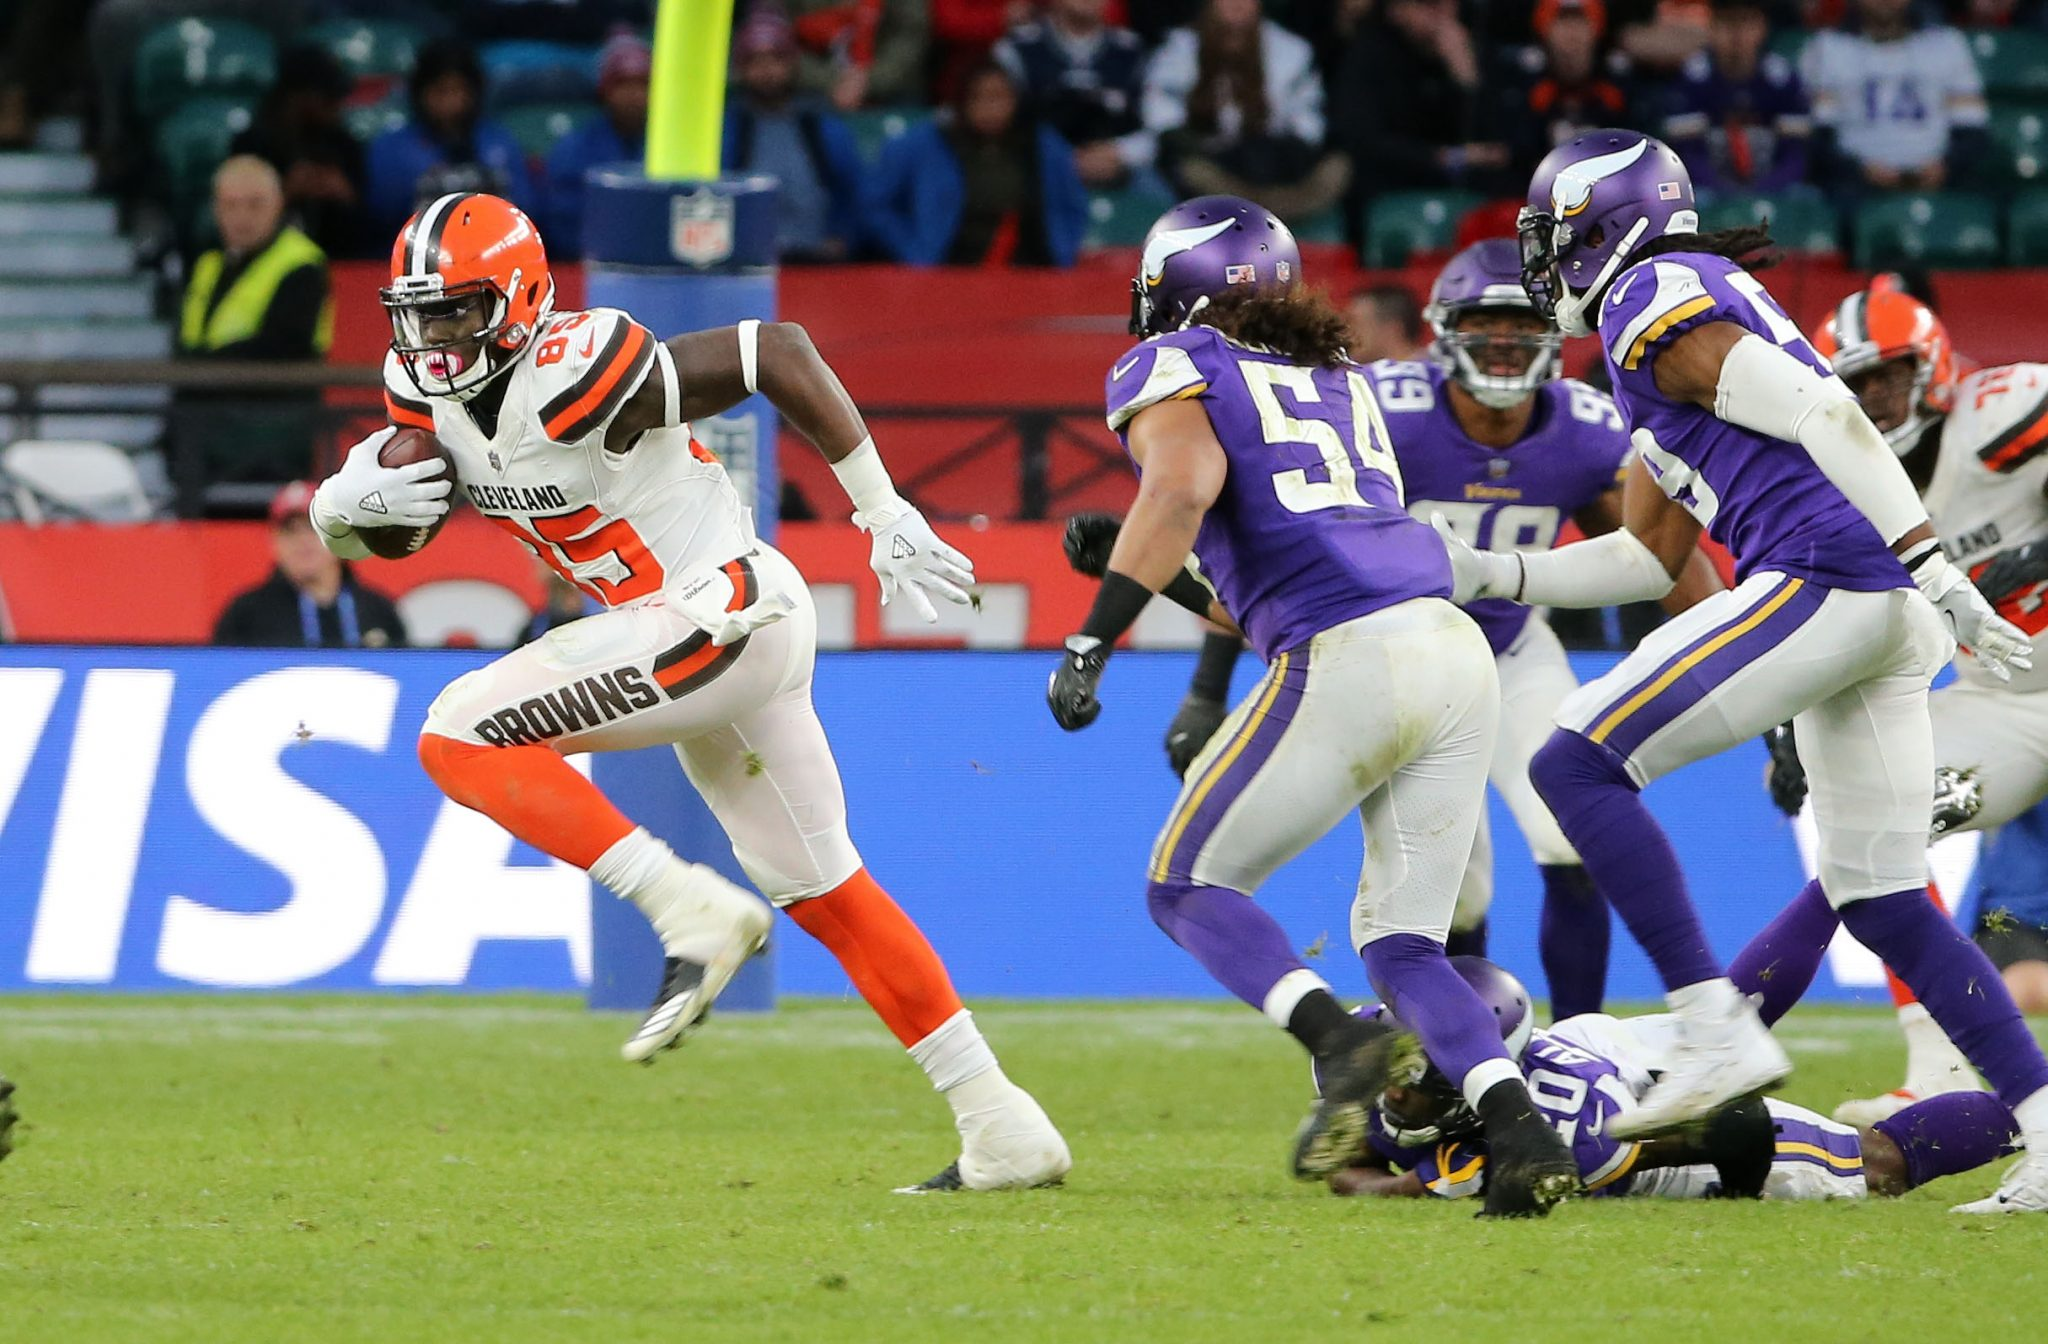 Cleveland Browns tight end David Njoku  (85). Cleveland Browns and the Minnesota Vikings  play in the NFL London Games at Twickenham Stadium in London on Sunday, October 29. photo: Olvier Ryan/ NFL